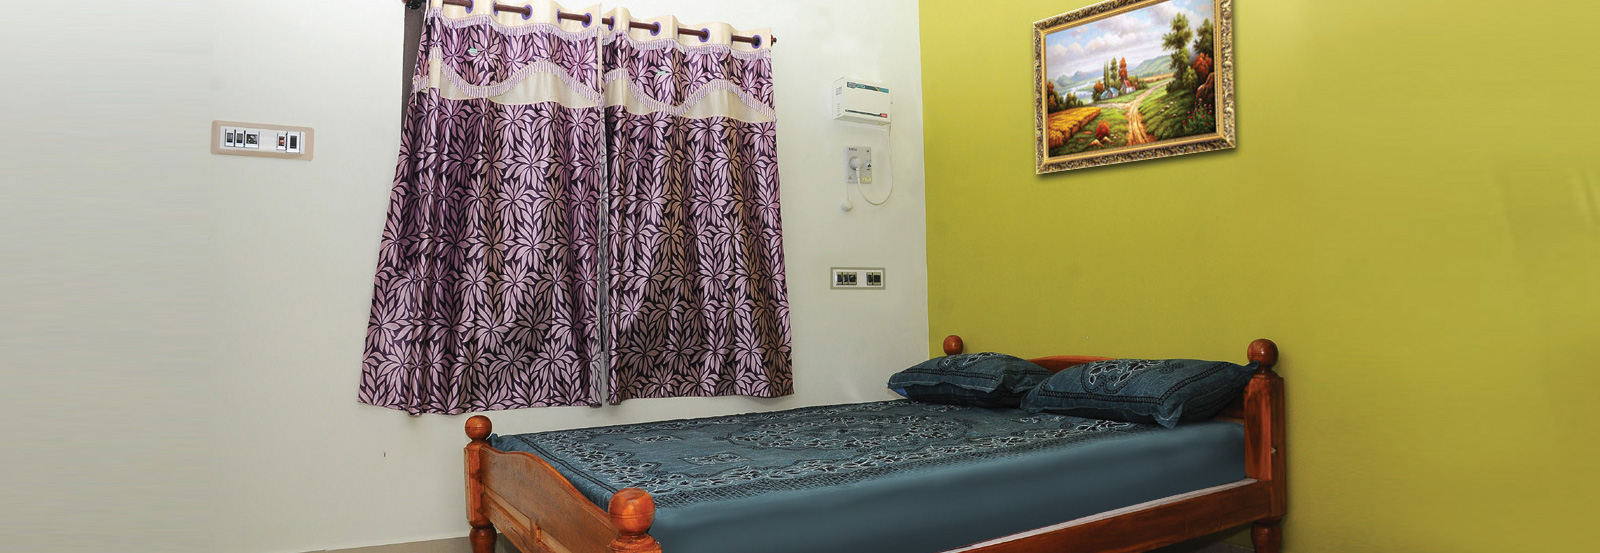 kumbakonam hotel bedroom